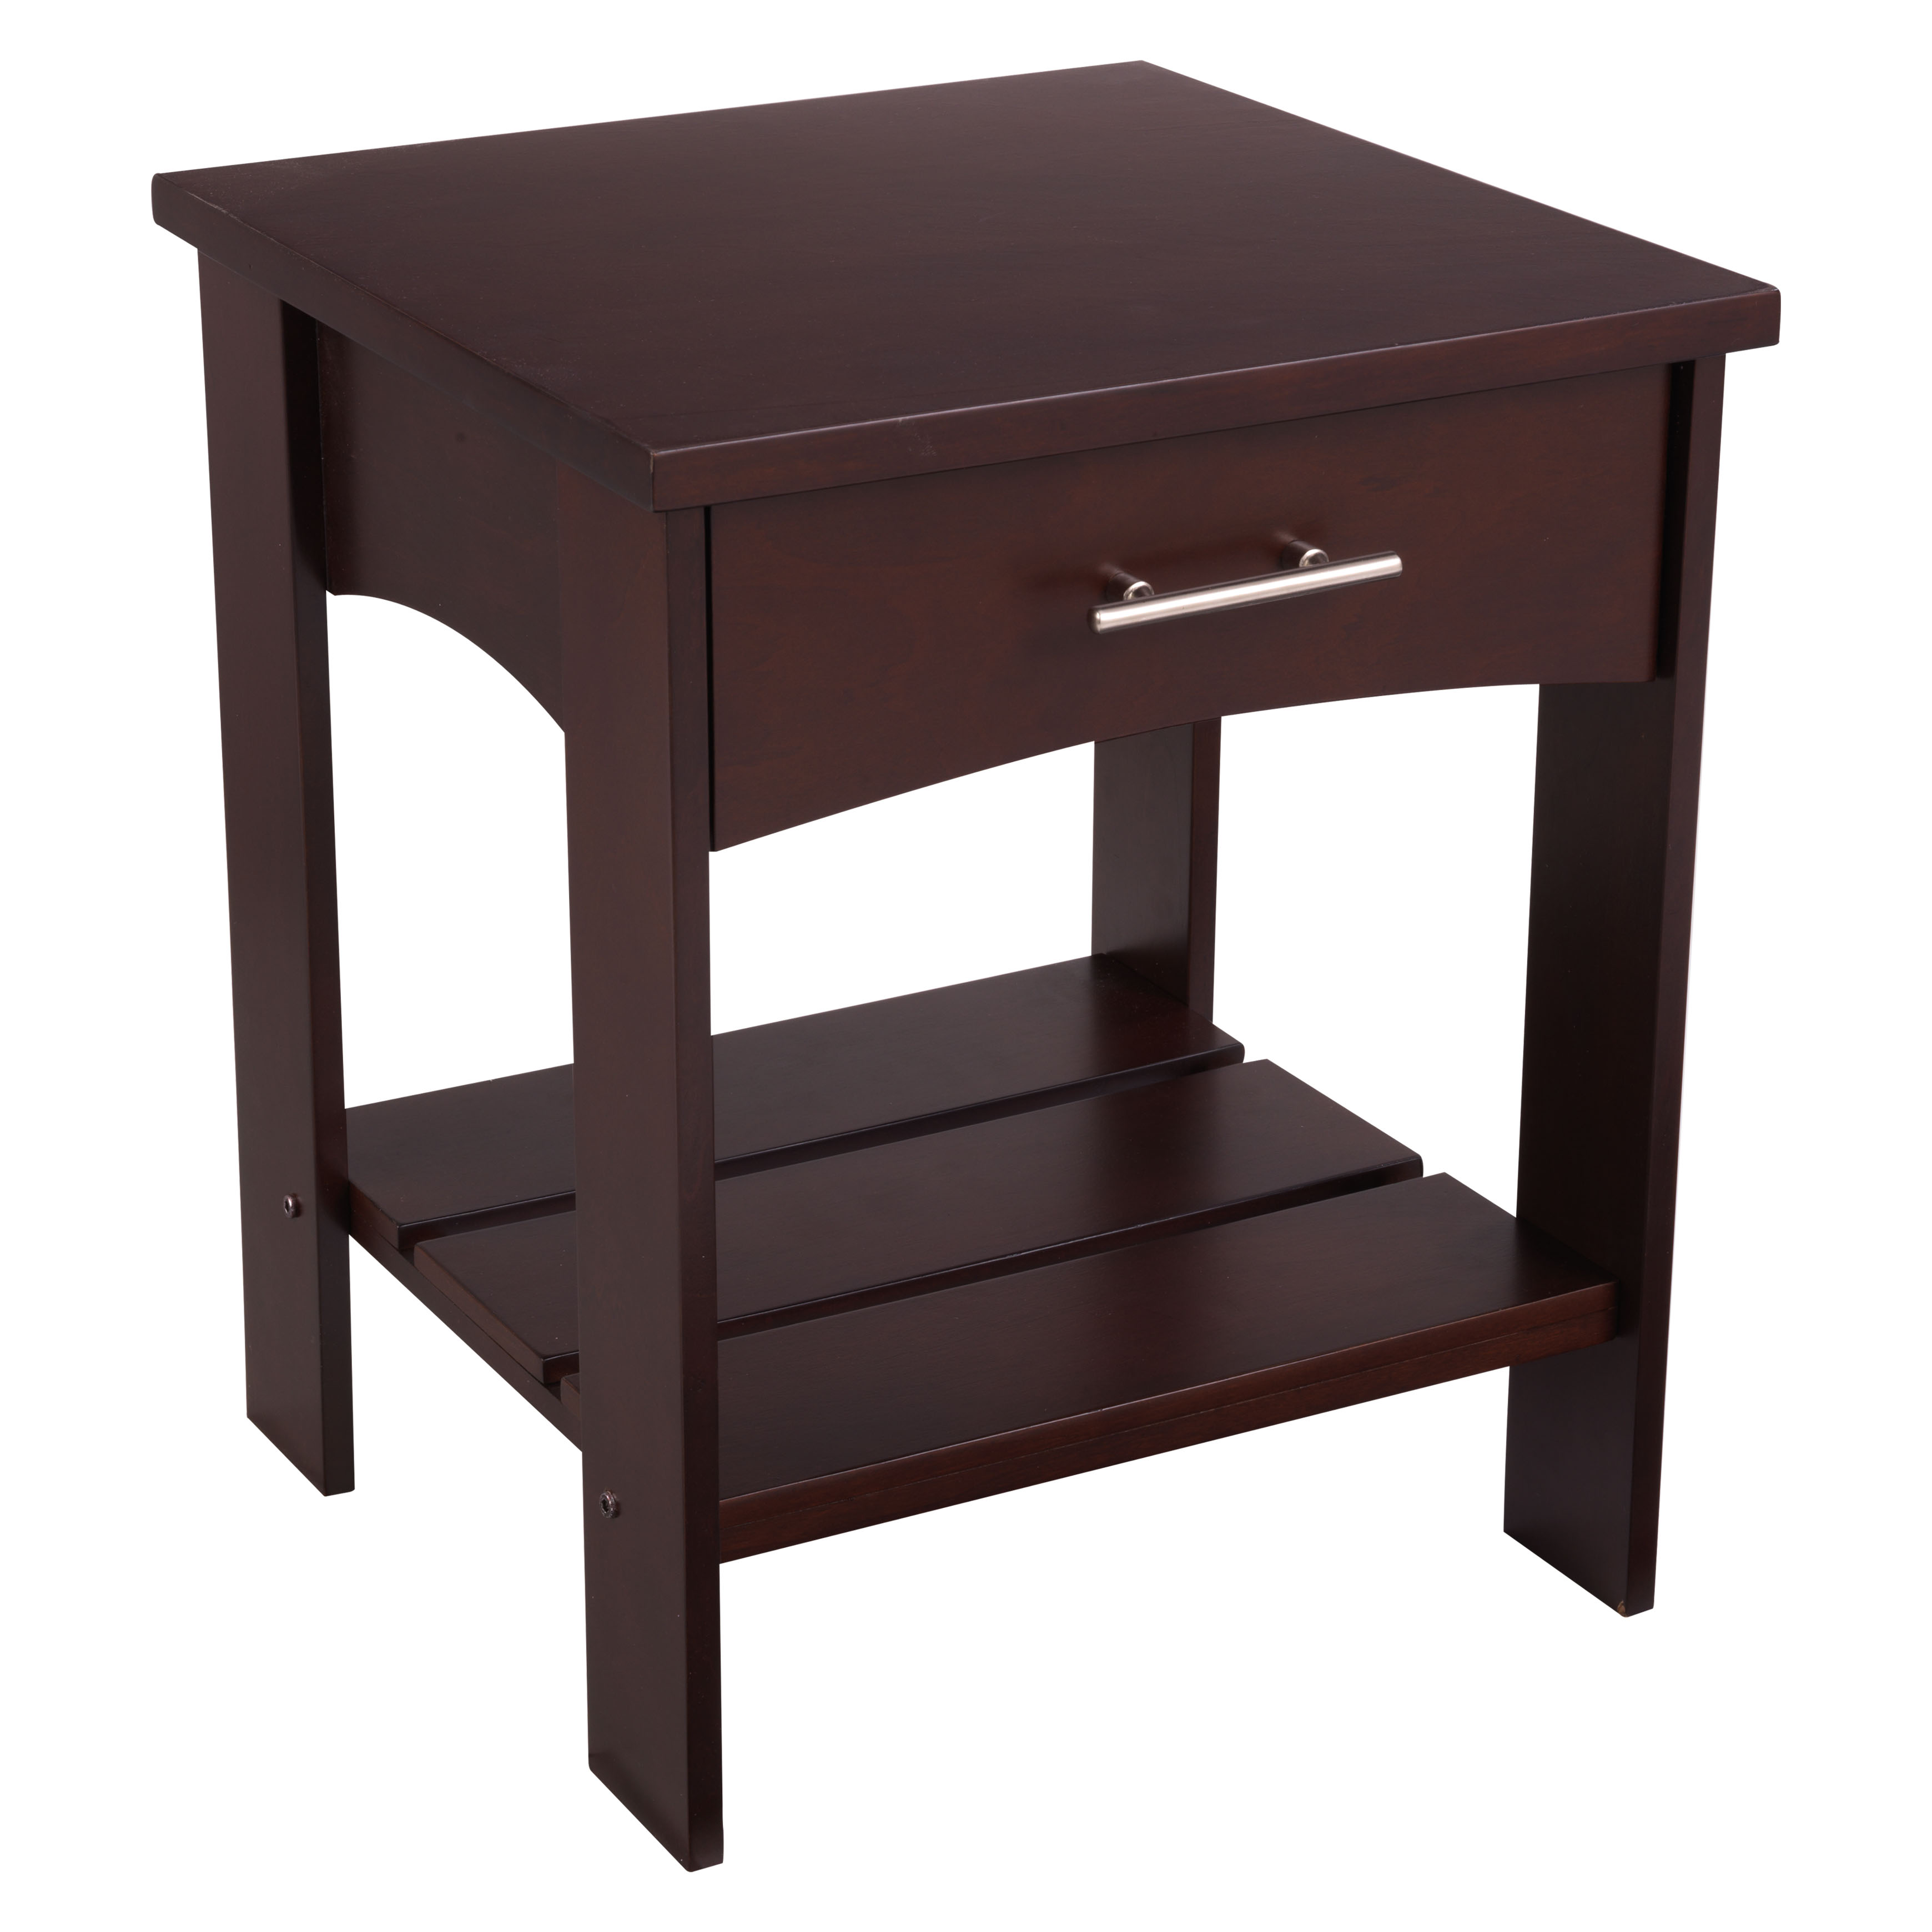 KidKraft Addison Twin Side Table - Espresso